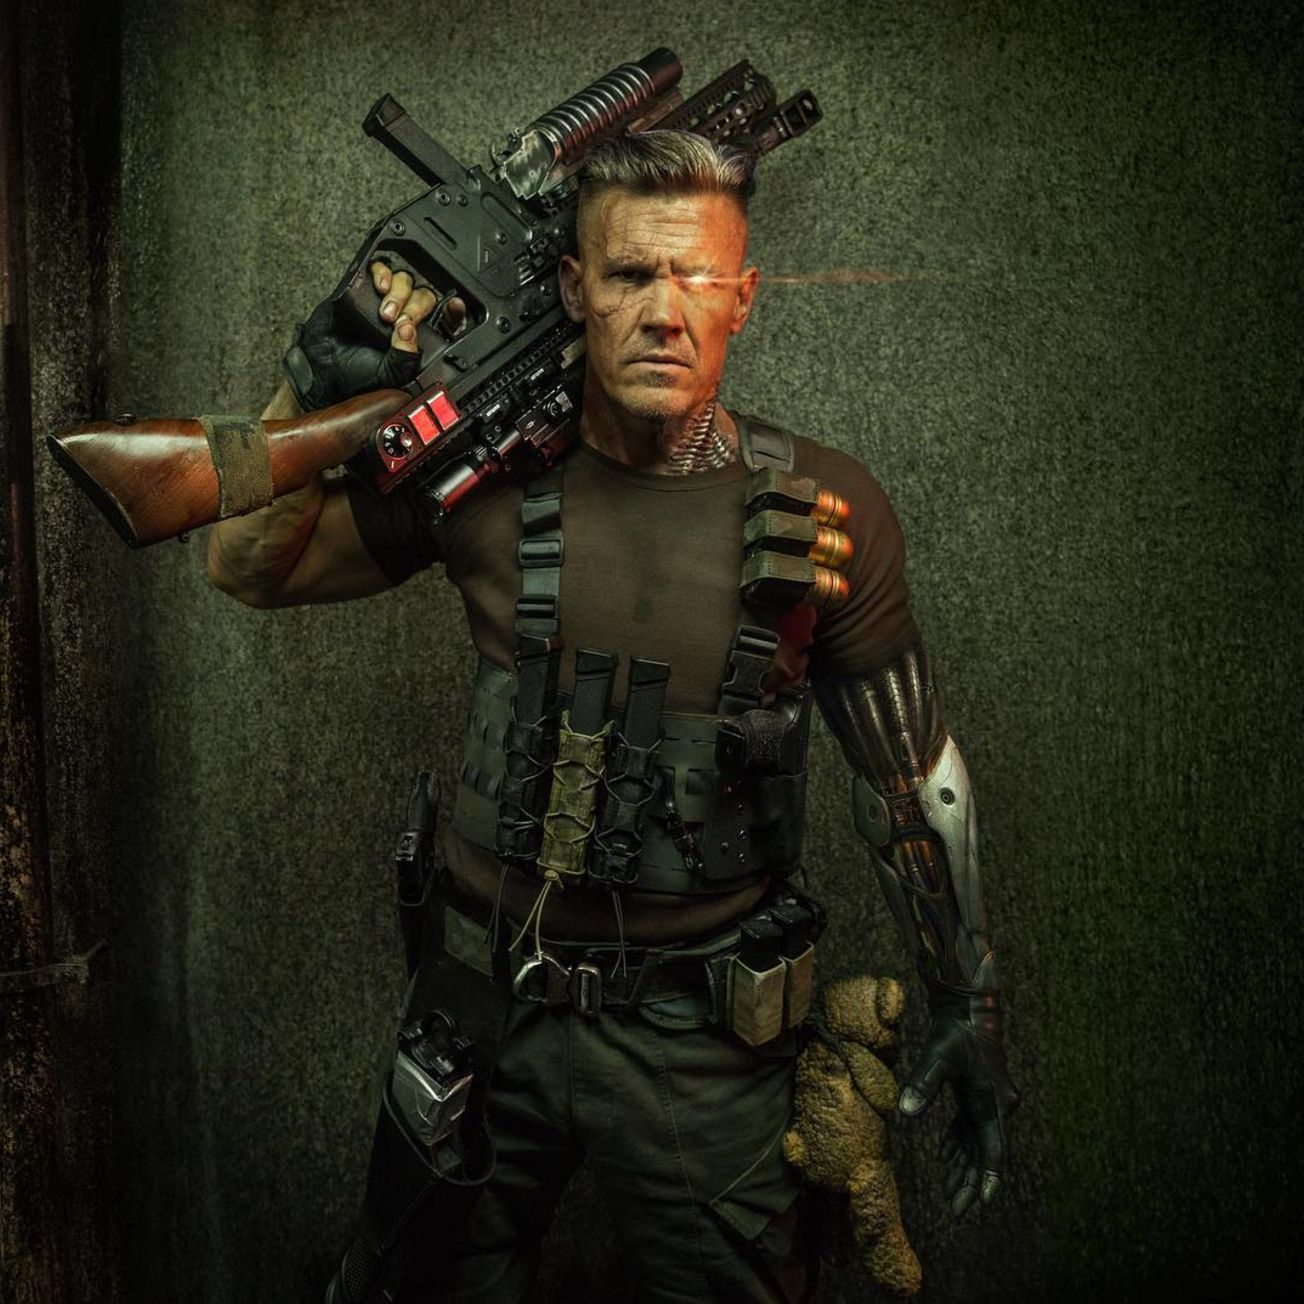 heres-our-first-look-at-josh-brolin-as-cable-in-deadpool-21